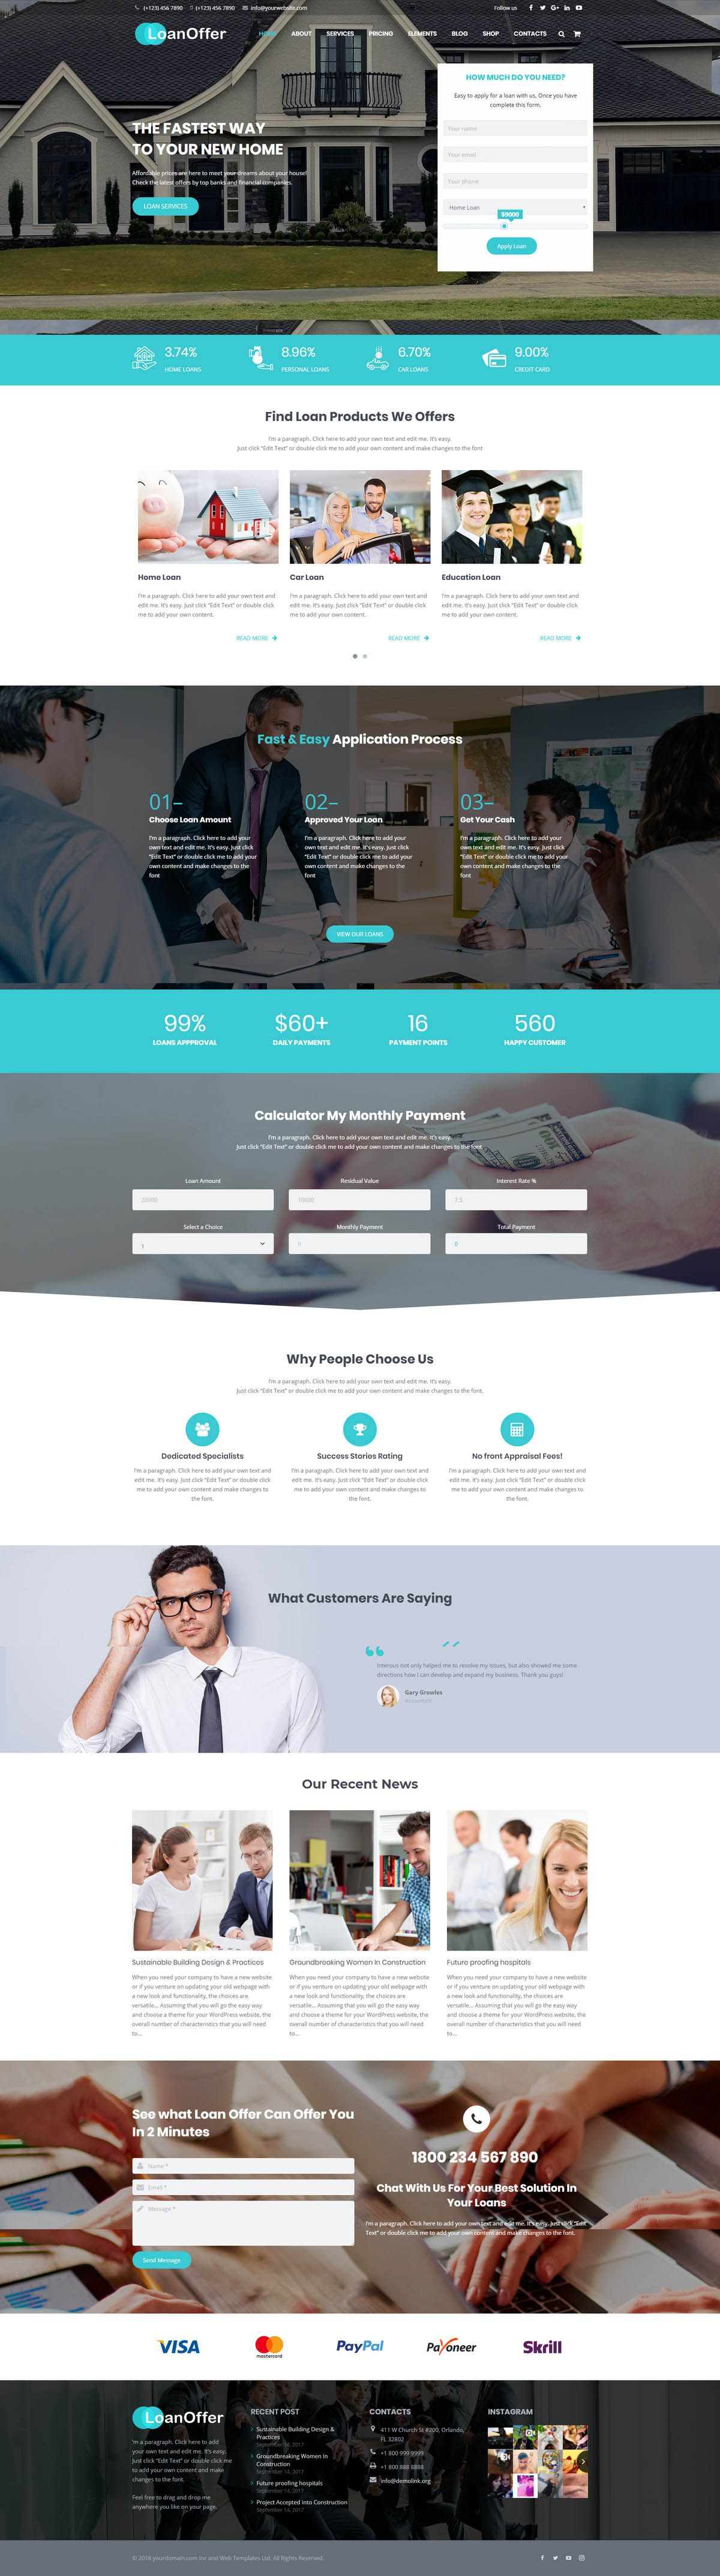 LoanOffer - Business Loan WordPress Theme Screenshot 2